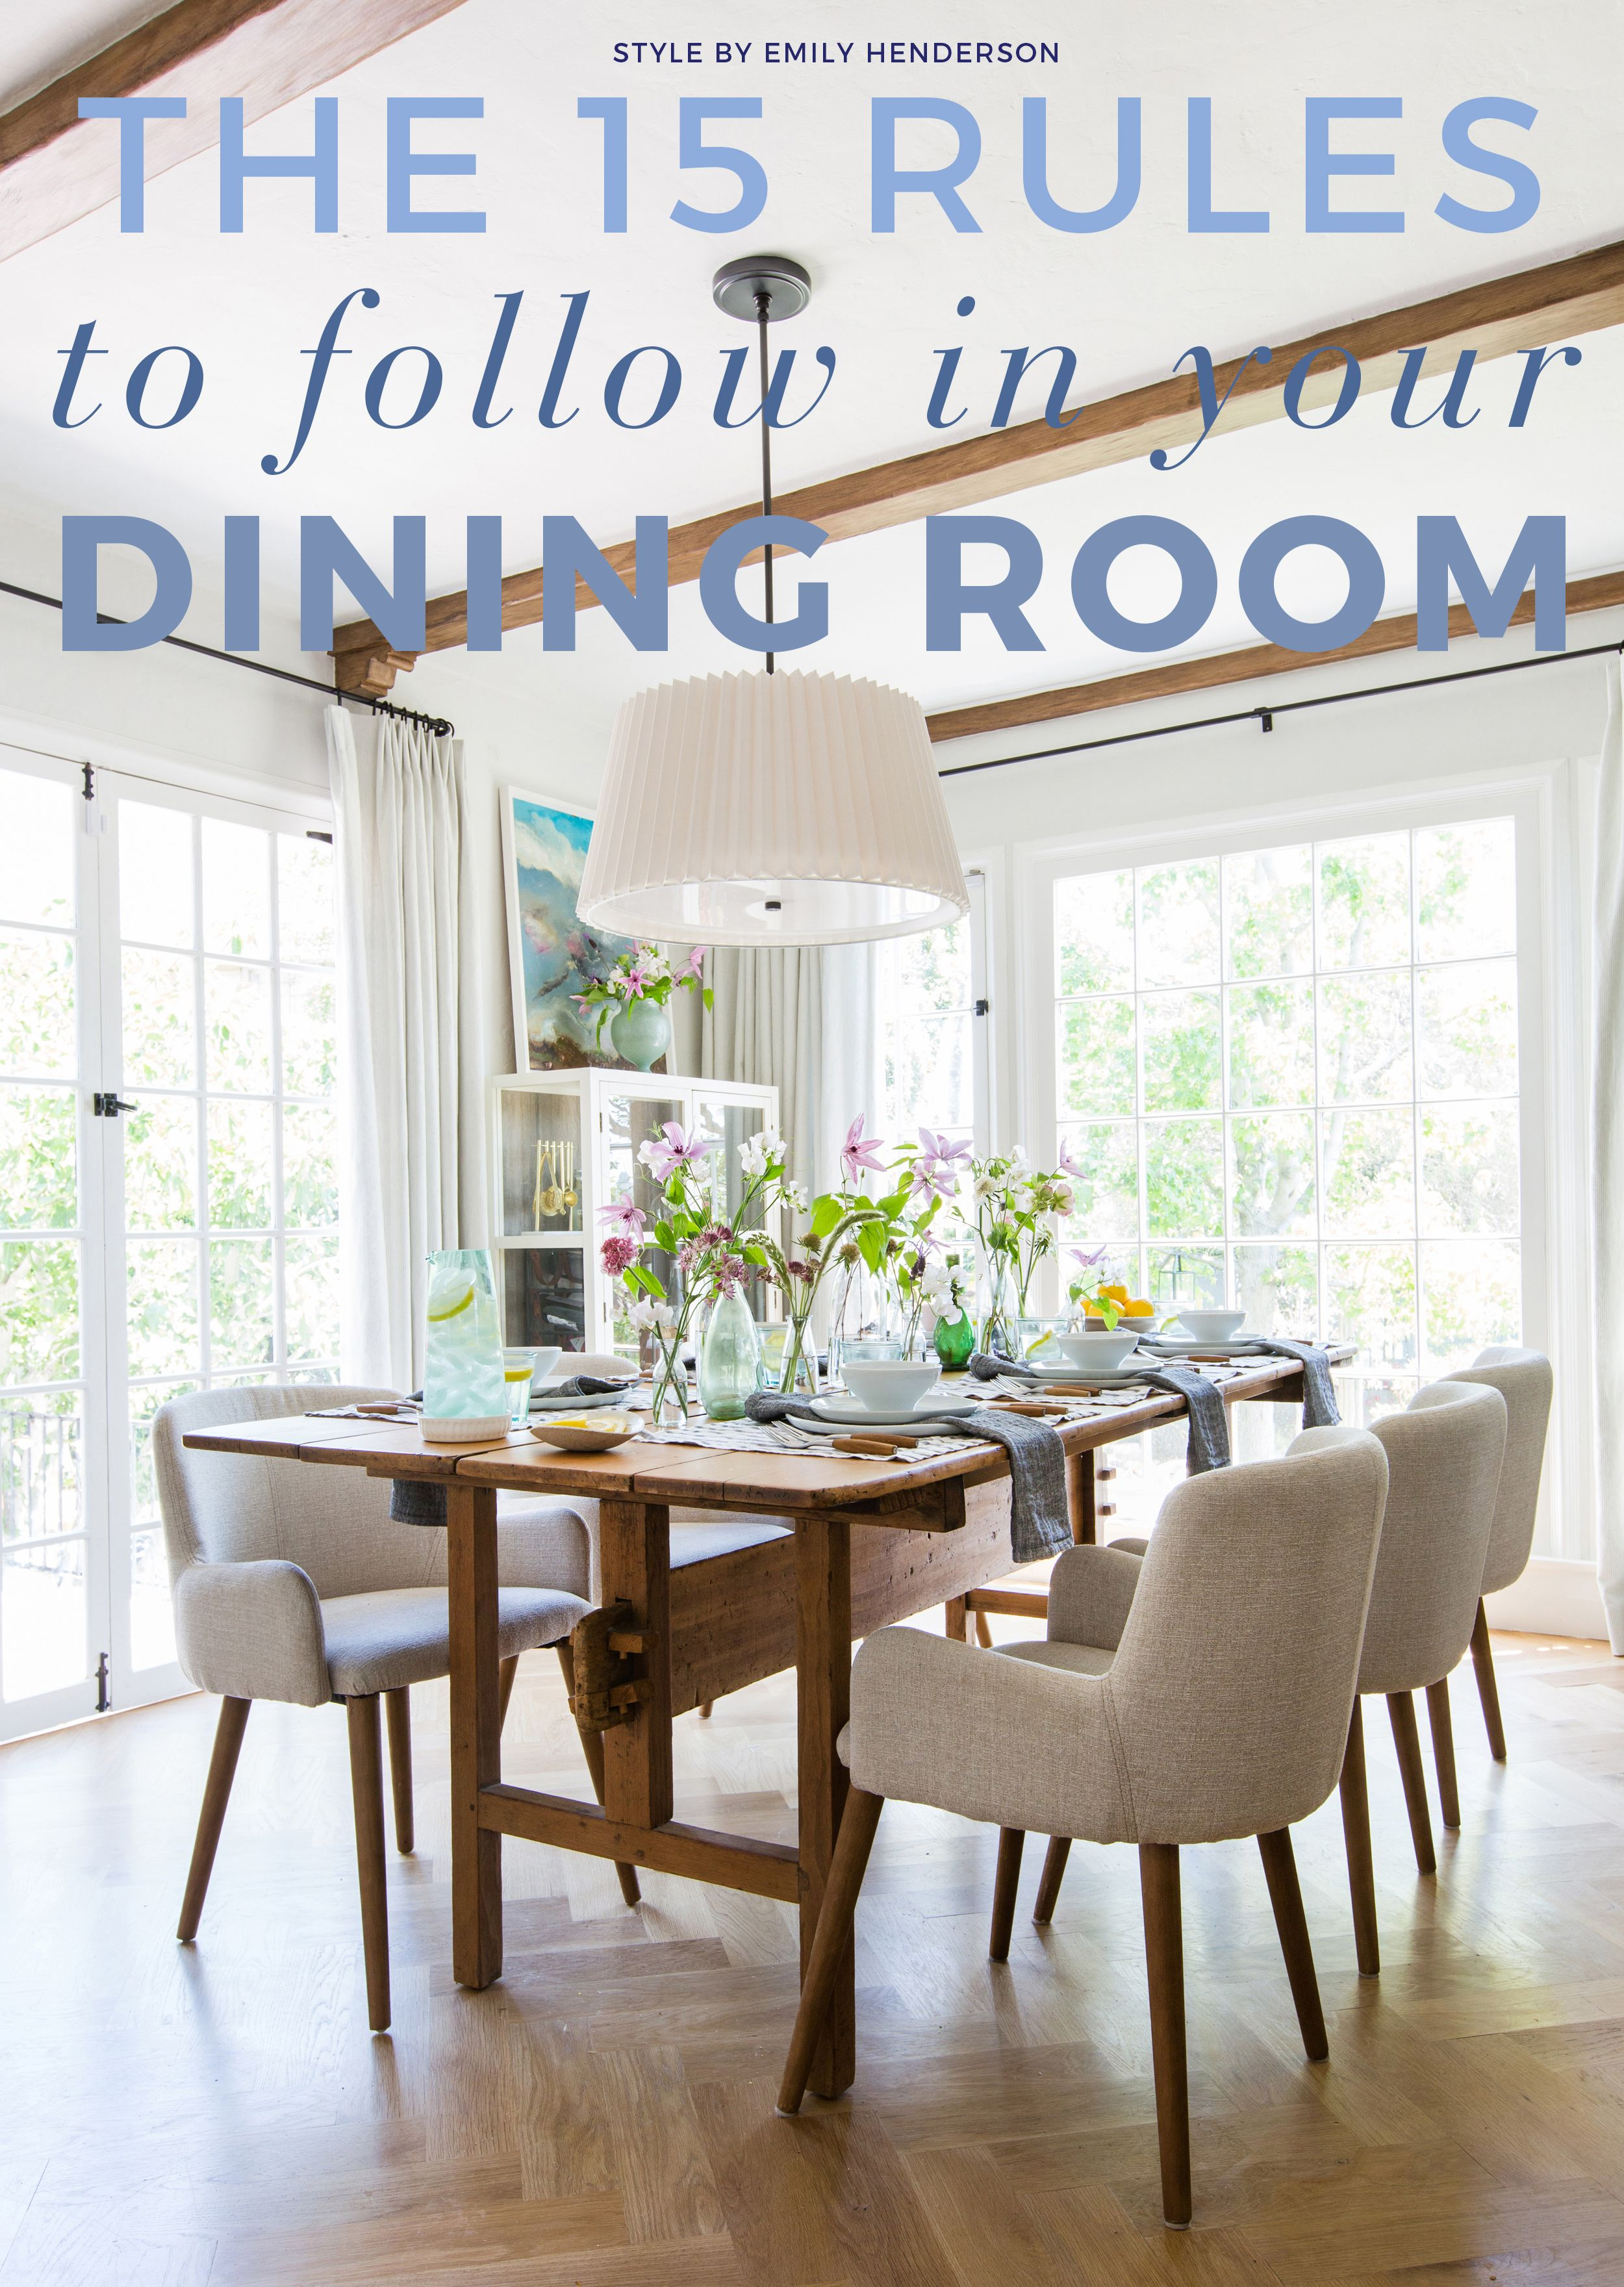 Dining Room Rules Emily Henderson Casual Dining Rooms Dining